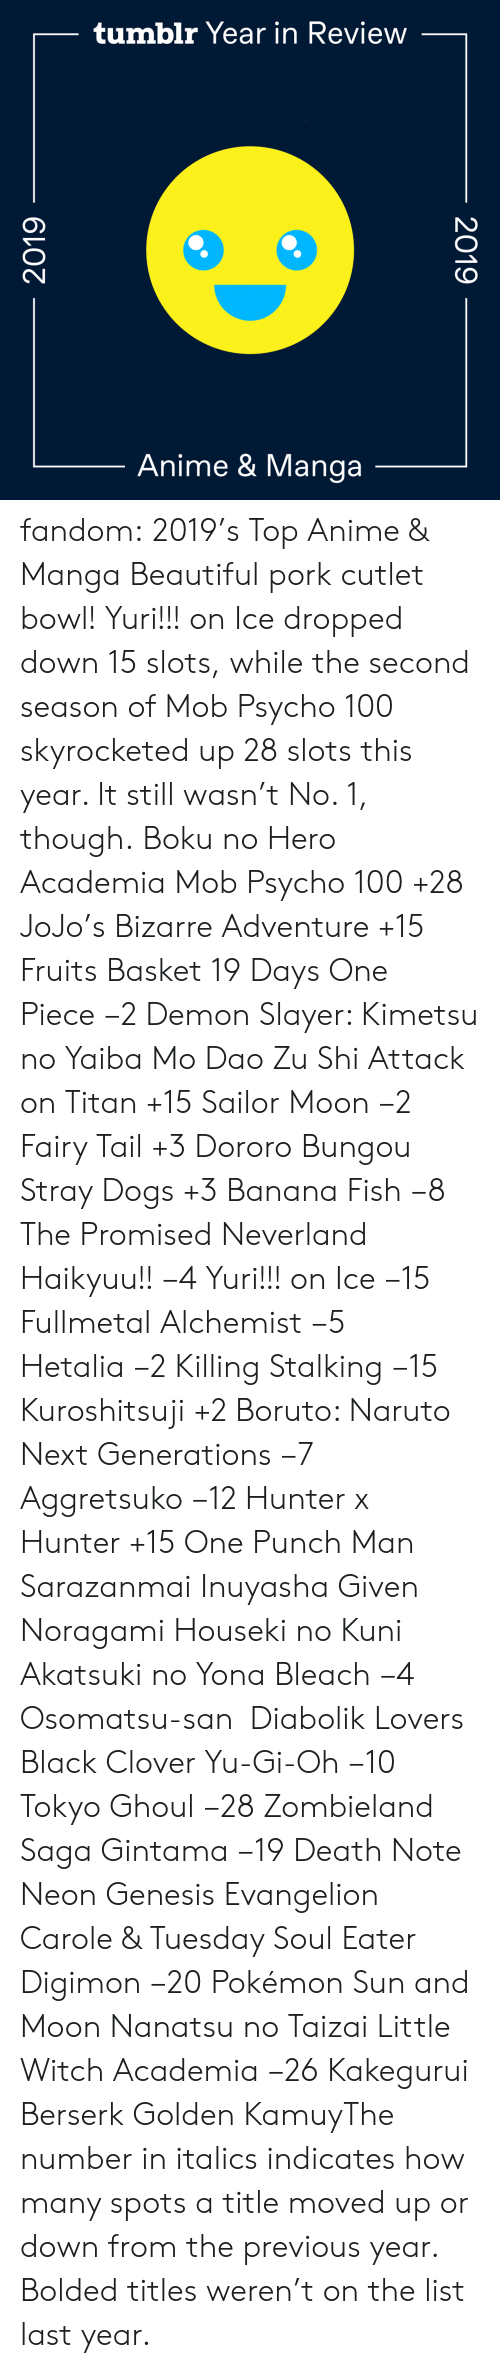 Moved: tumblr Year in Review  Anime & Manga  2019  2019 fandom:  2019's Top Anime & Manga  Beautiful pork cutlet bowl! Yuri!!! on Ice dropped down 15 slots, while the second season of Mob Psycho 100 skyrocketed up 28 slots this year. It still wasn't No. 1, though.  Boku no Hero Academia  Mob Psycho 100 +28  JoJo's Bizarre Adventure +15  Fruits Basket  19 Days  One Piece −2  Demon Slayer: Kimetsu no Yaiba  Mo Dao Zu Shi  Attack on Titan +15  Sailor Moon −2  Fairy Tail +3  Dororo  Bungou Stray Dogs +3  Banana Fish −8  The Promised Neverland  Haikyuu!! −4  Yuri!!! on Ice −15  Fullmetal Alchemist −5  Hetalia −2  Killing Stalking −15  Kuroshitsuji +2  Boruto: Naruto Next Generations −7  Aggretsuko −12  Hunter x Hunter +15  One Punch Man  Sarazanmai  Inuyasha  Given  Noragami  Houseki no Kuni  Akatsuki no Yona  Bleach −4  Osomatsu-san   Diabolik Lovers  Black Clover  Yu-Gi-Oh −10  Tokyo Ghoul −28  Zombieland Saga  Gintama −19  Death Note  Neon Genesis Evangelion  Carole & Tuesday  Soul Eater  Digimon −20  Pokémon Sun and Moon  Nanatsu no Taizai  Little Witch Academia −26  Kakegurui  Berserk Golden KamuyThe number in italics indicates how many spots a title moved up or down from the previous year. Bolded titles weren't on the list last year.